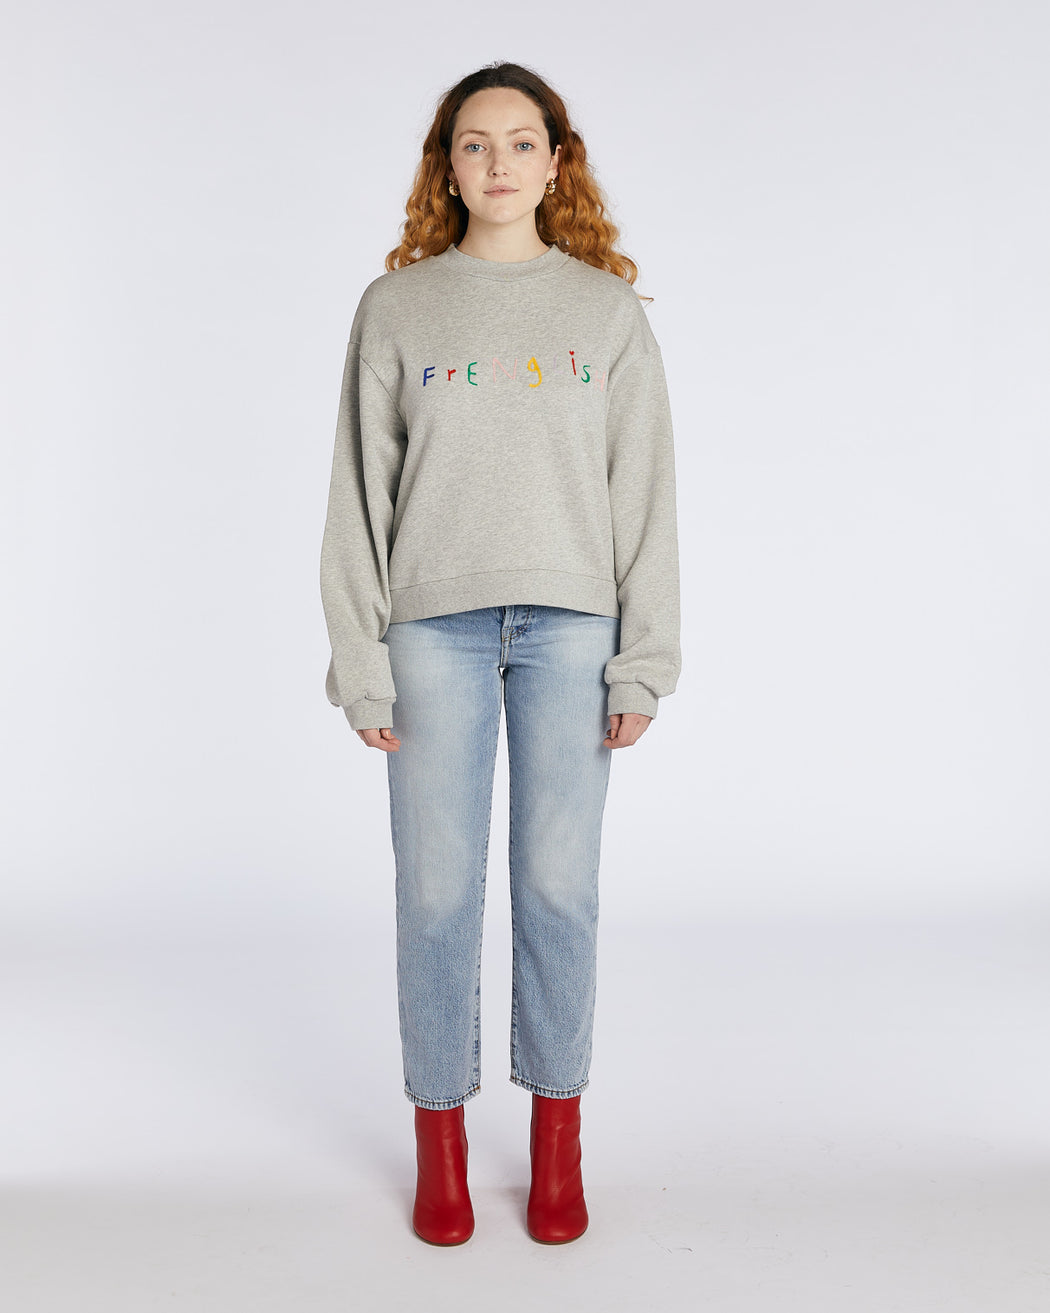 Frenglish Alexis Side Zip Sweatshirt